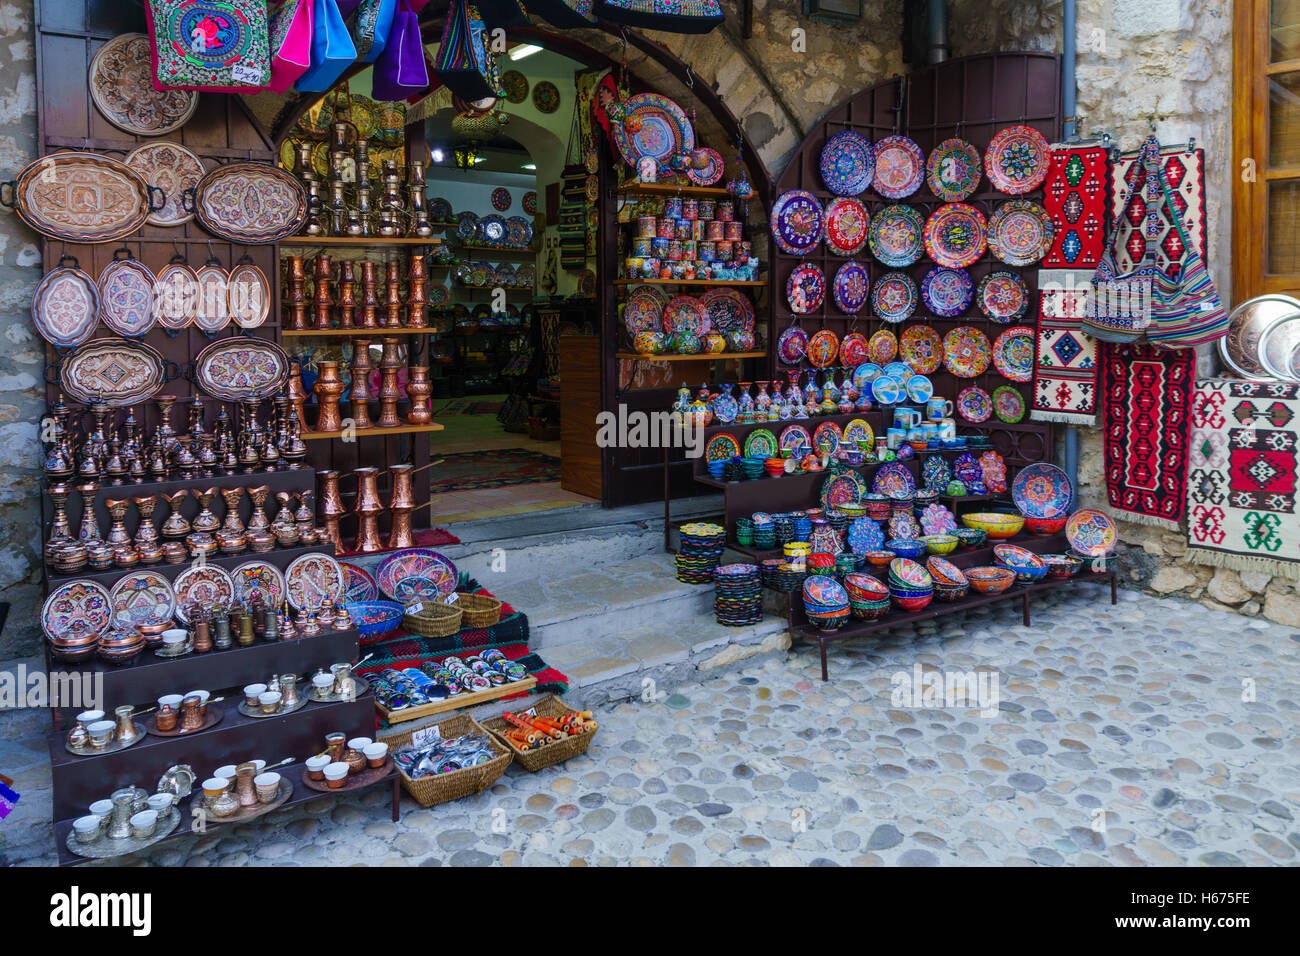 MOSTAR, BIH - JULY 05, 2015: Typical Souvenirs store, in Mostar, Bosnia and Herzegovina - Stock Image